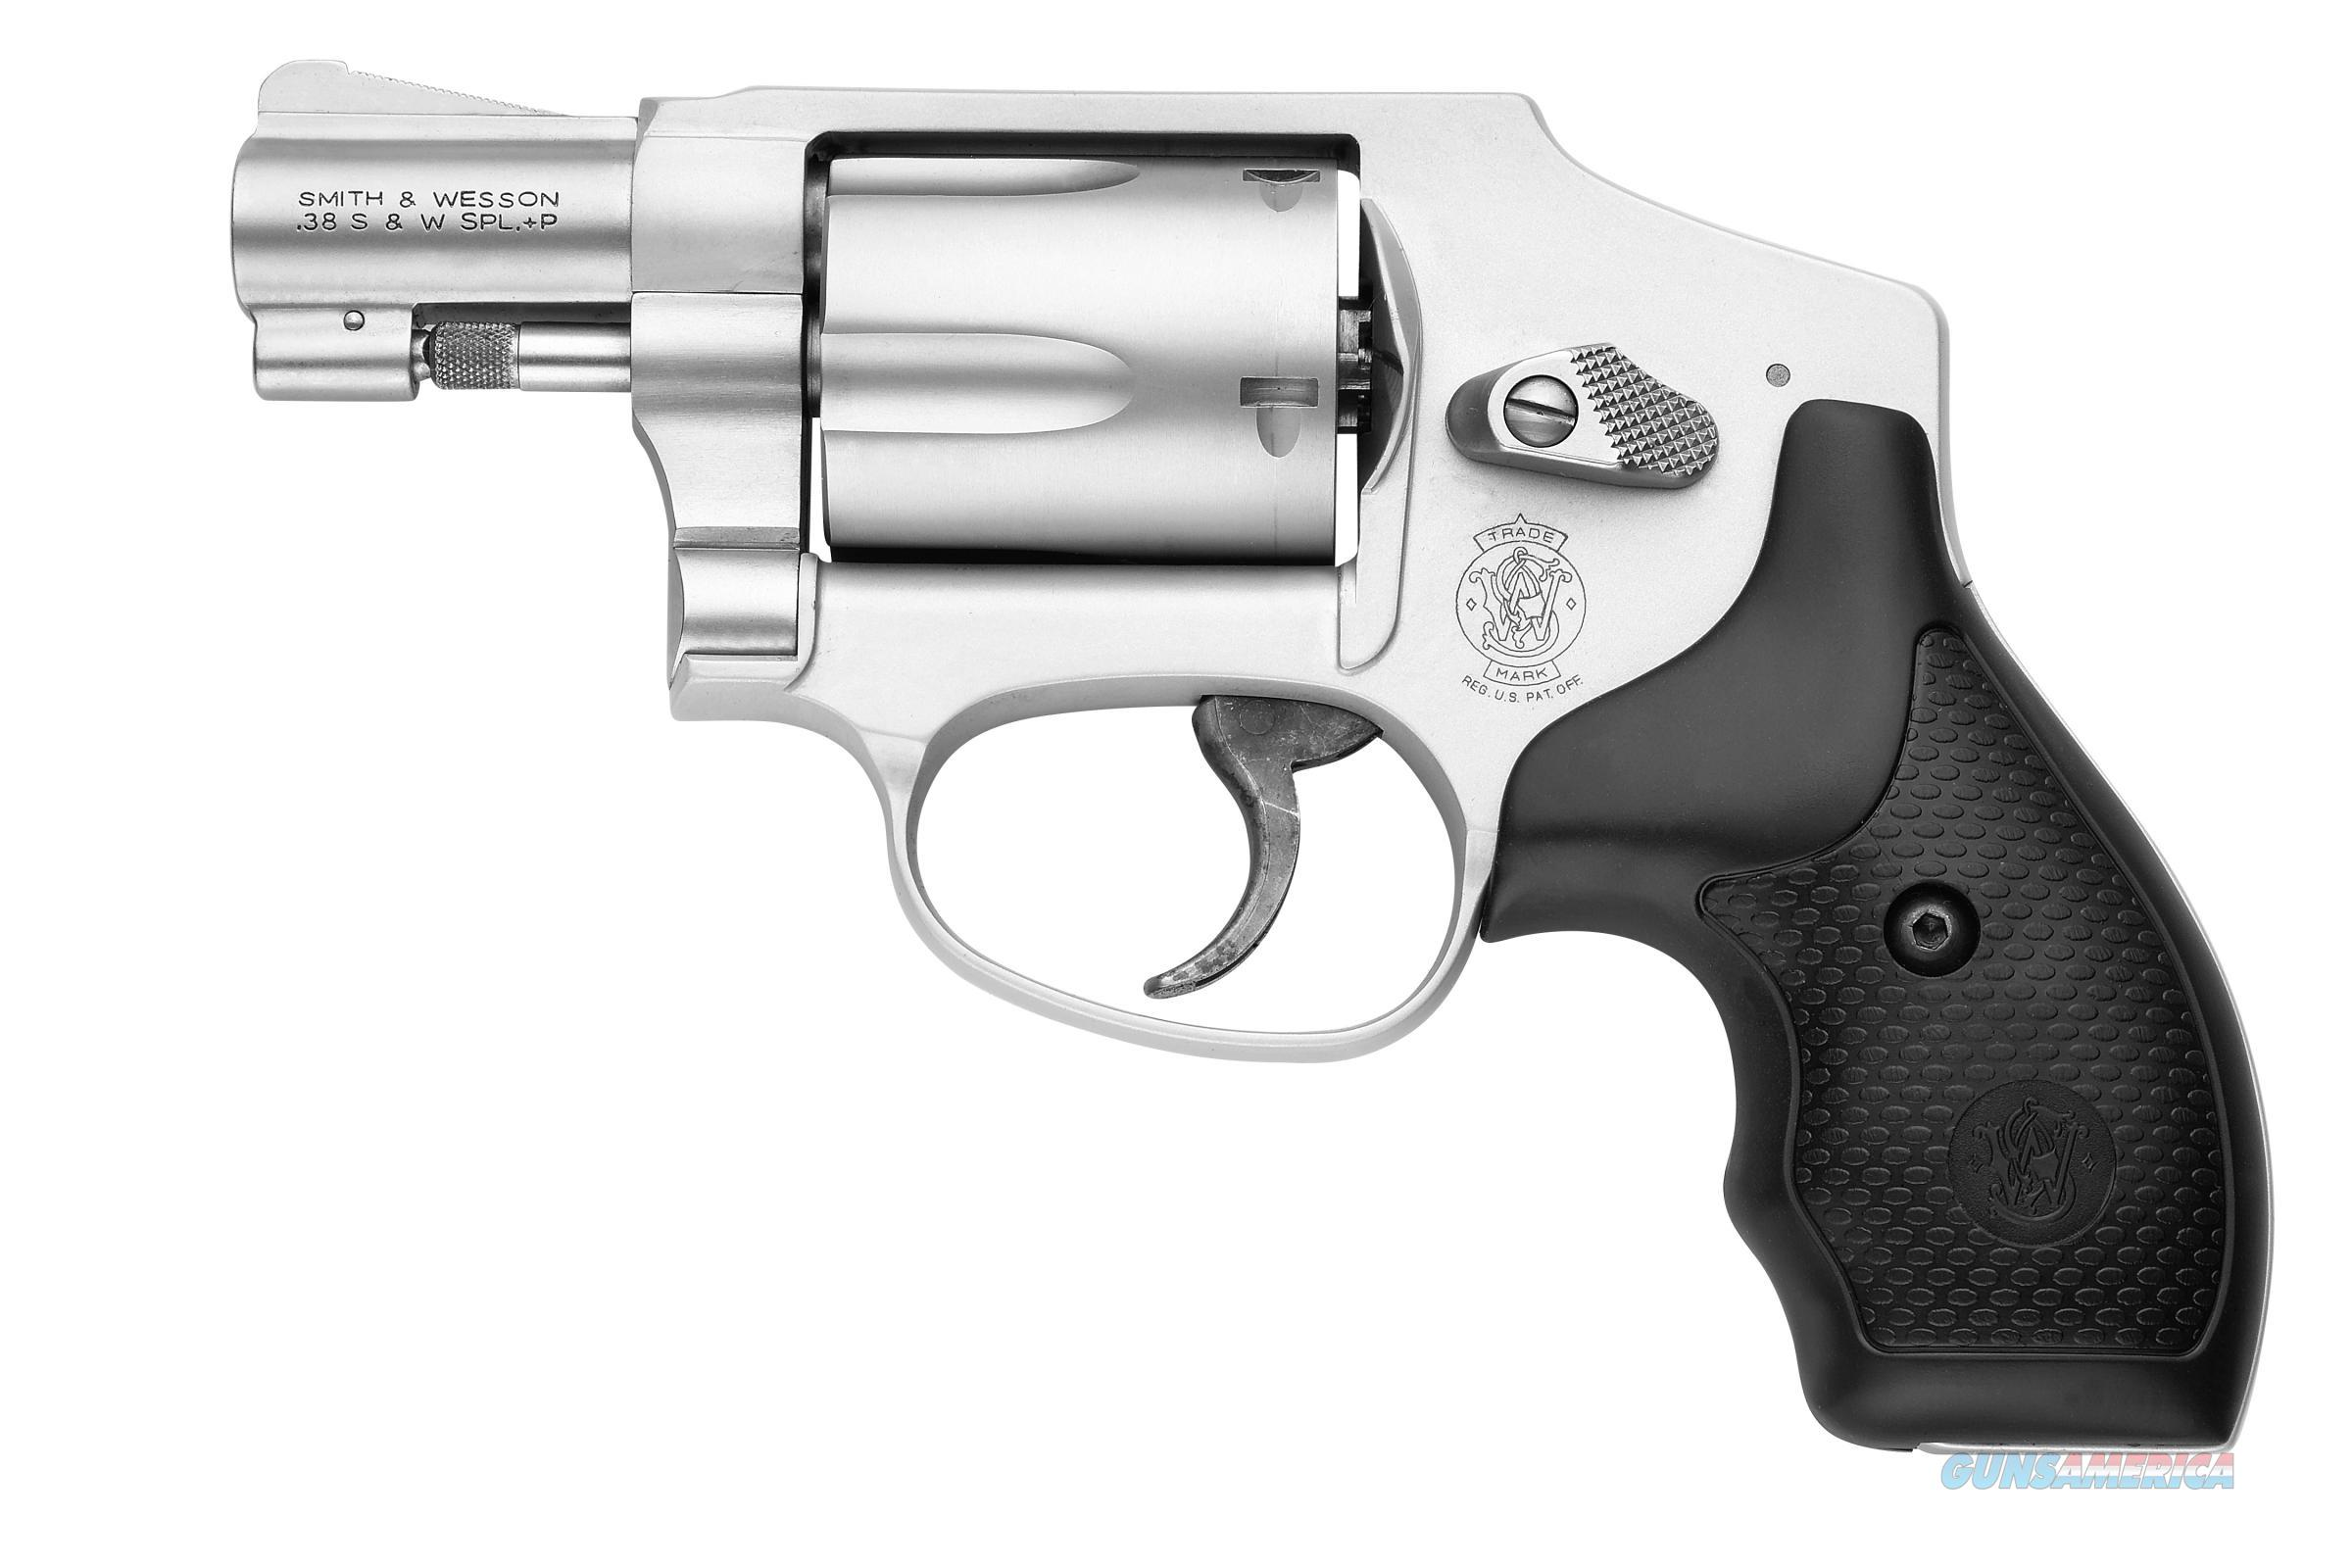 SMITH & WESSON 642 NIB FREE SHIPPING  Guns > Pistols > Smith & Wesson Revolvers > Small Frame ( J )